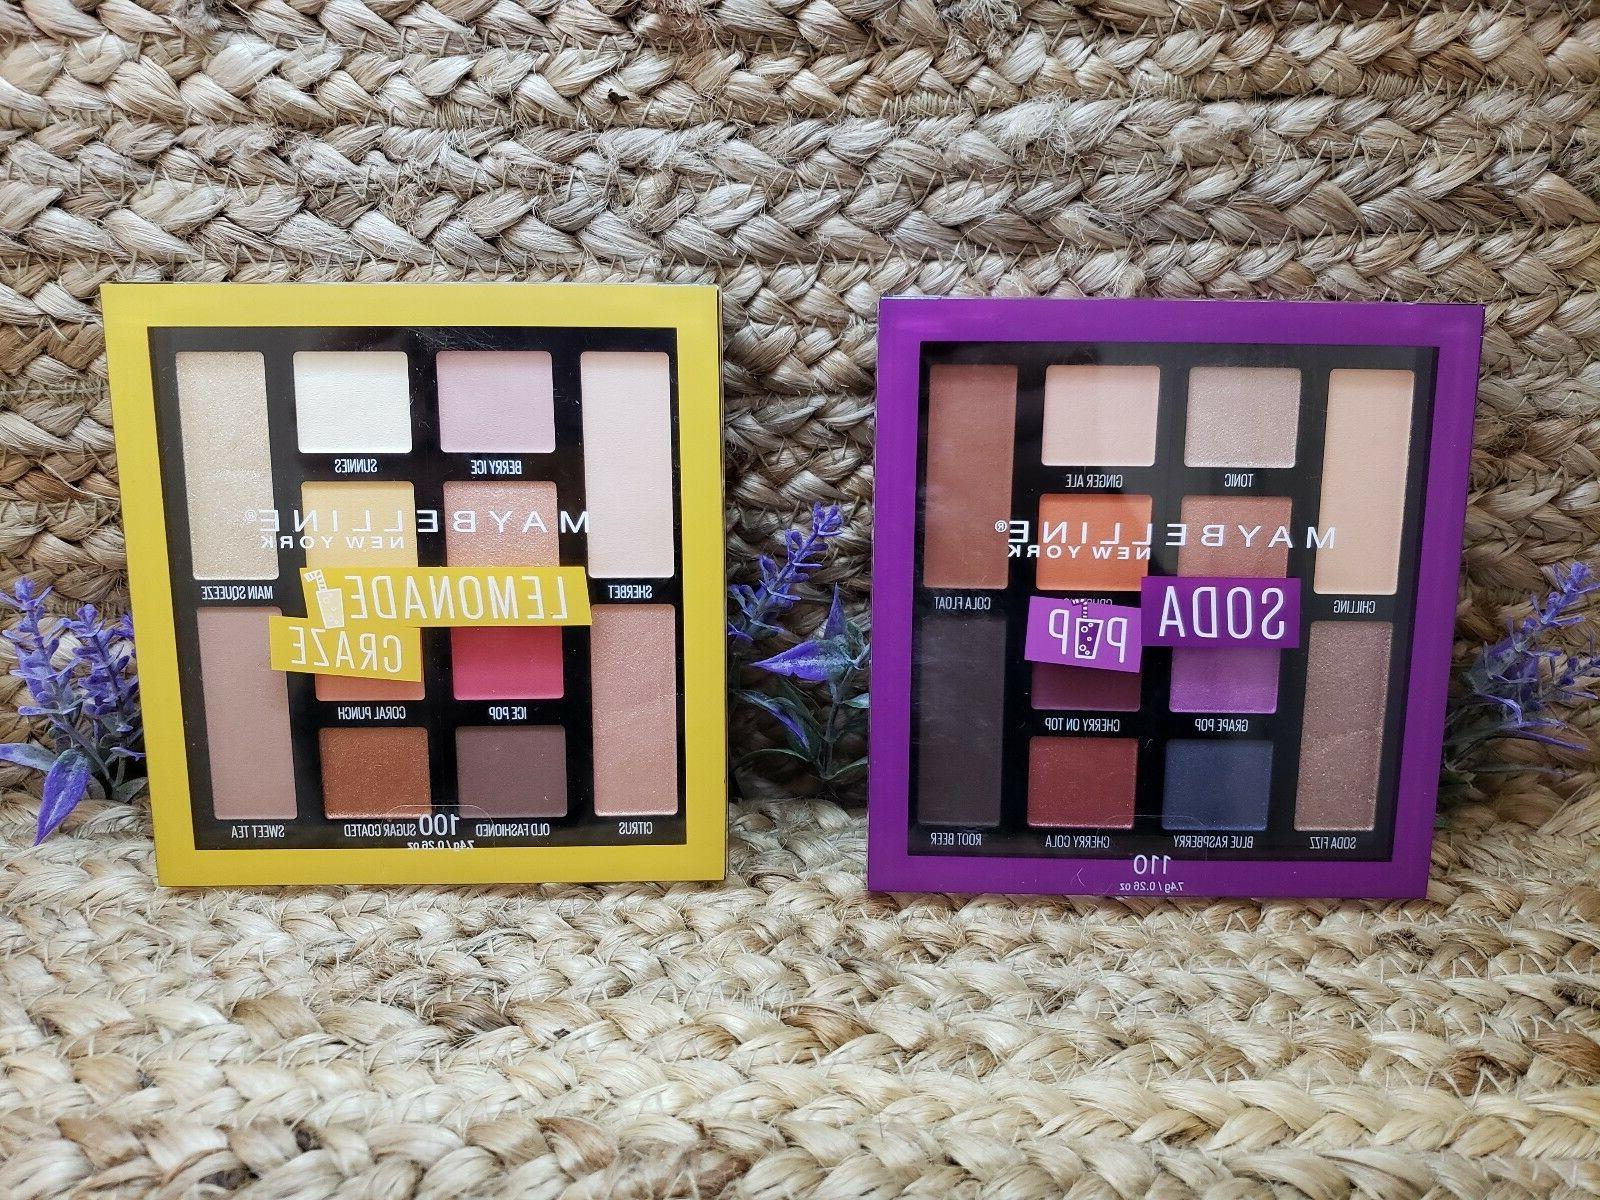 maybelline eyeshadow palette choice of palette